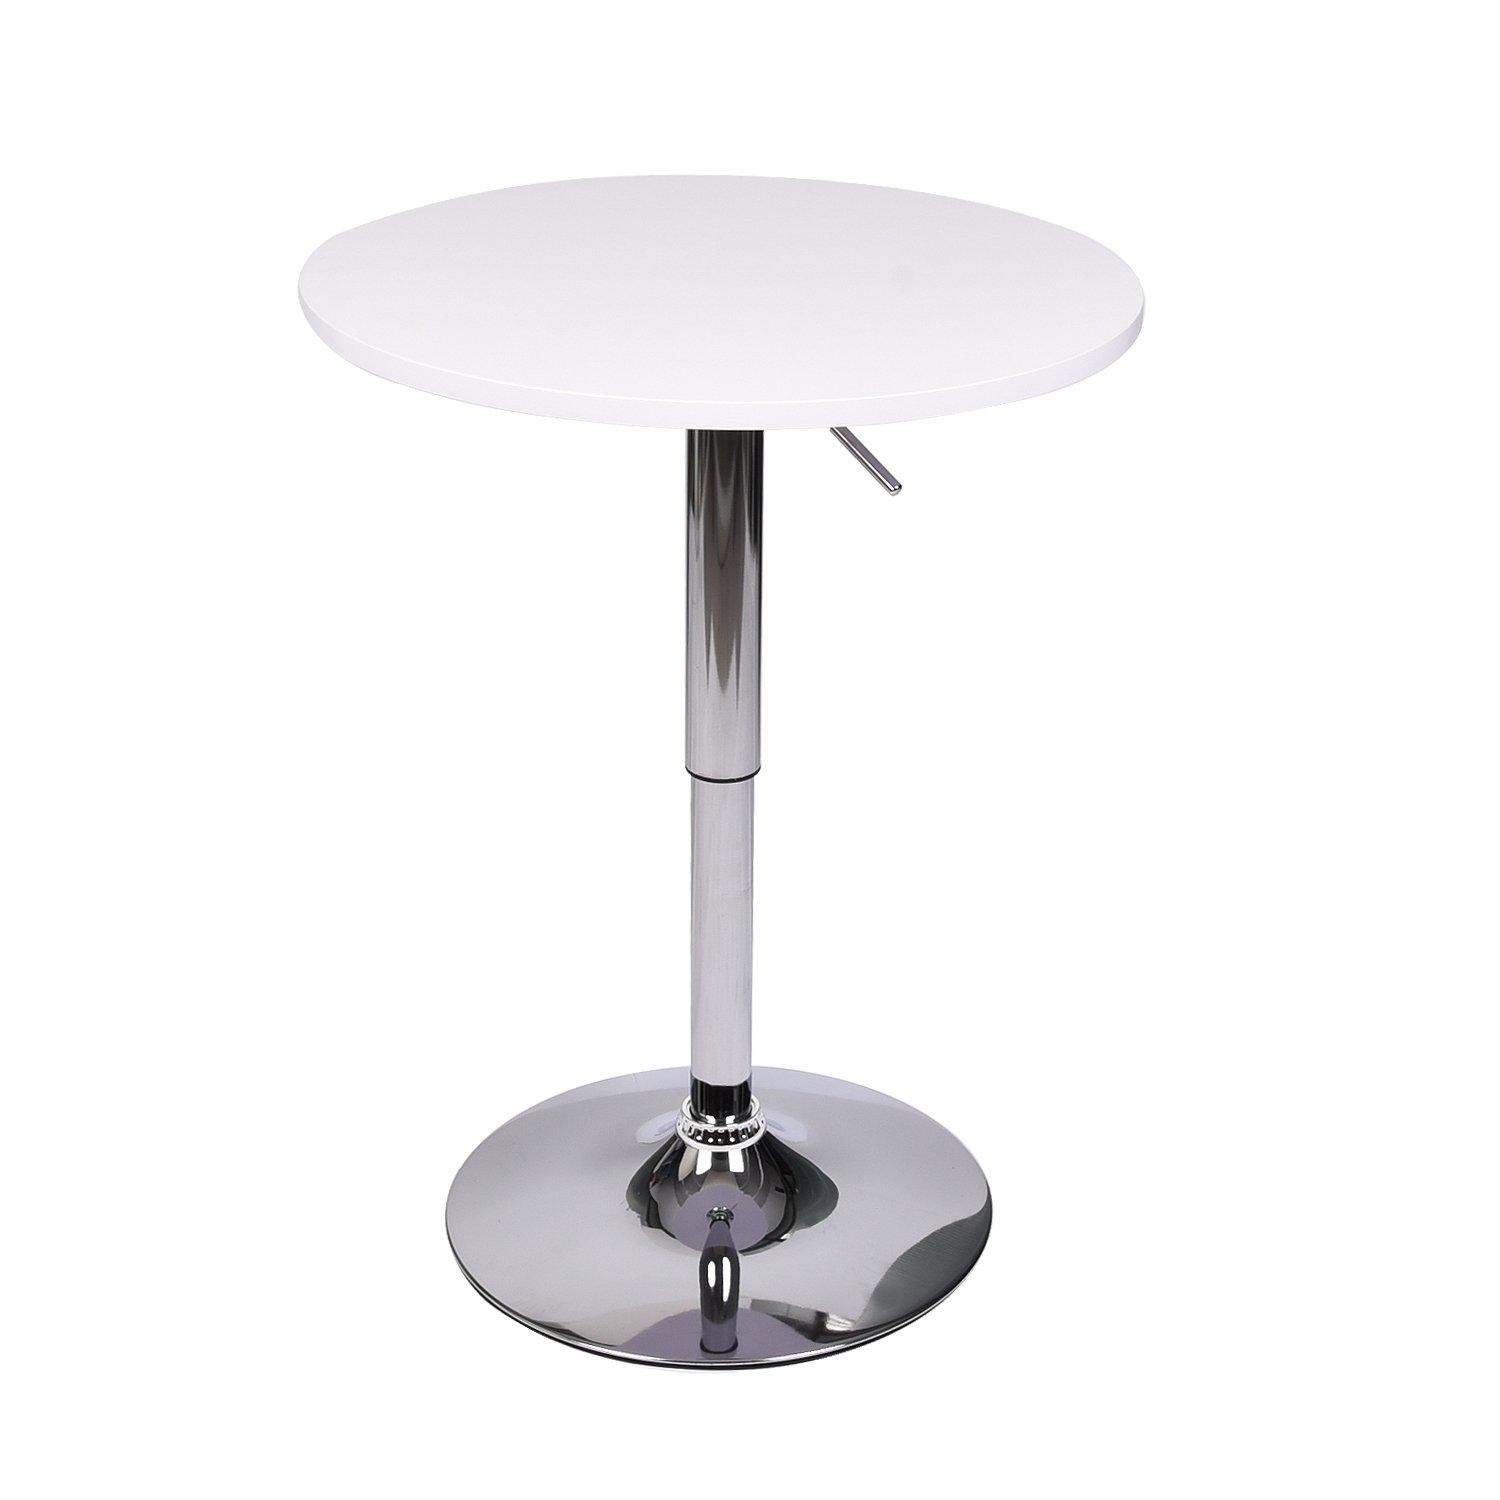 Adjustable Bar Table -Swivel Round Pub Table MDF Top with Black Back Base for Home Kitchen Bistro (White) by YOURLITEAMZ